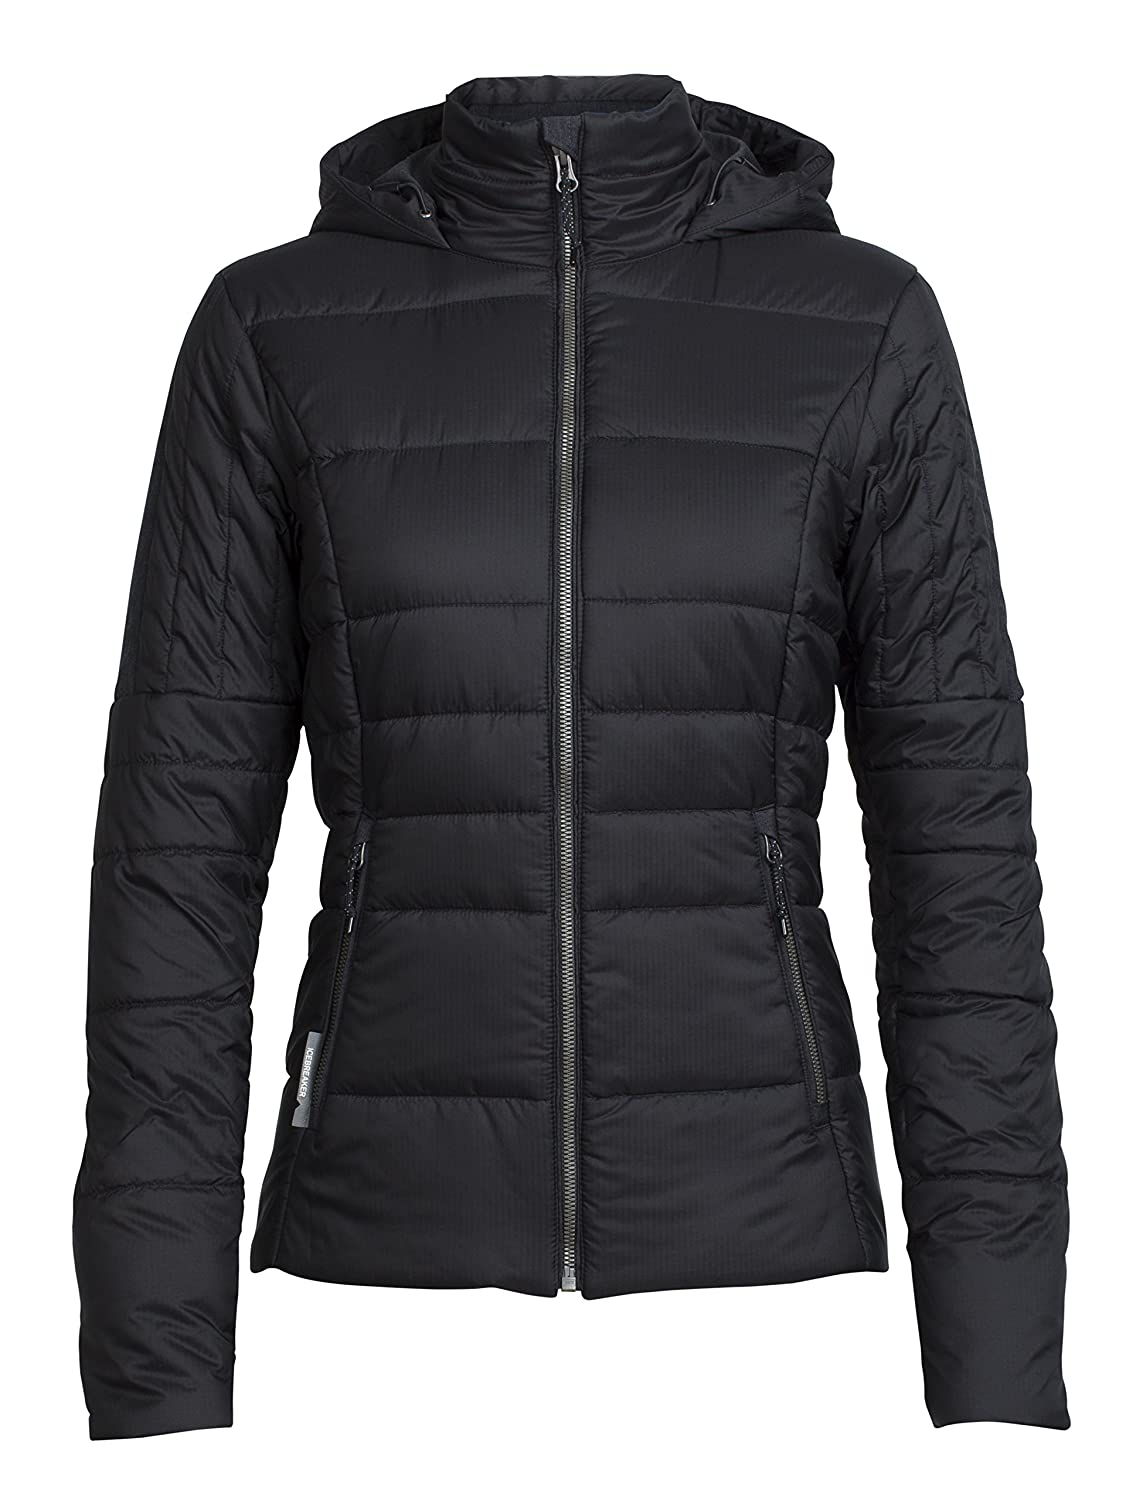 Black Jet HTHR Icebreaker Stratus X Hooded Jacket, New Zealand Merino Wool, Down Alternative